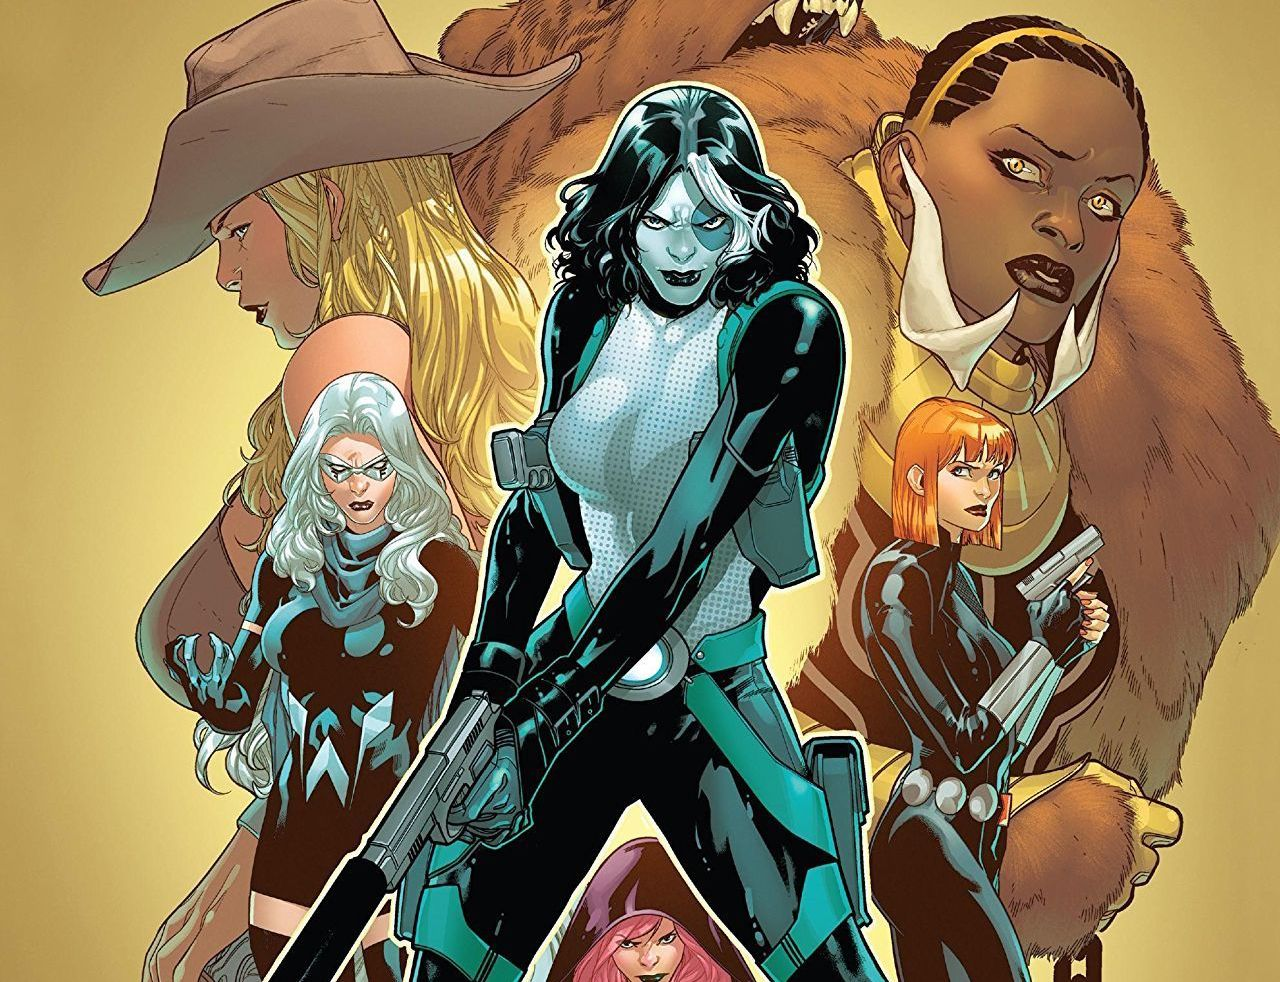 'Domino: Hotshots' TPB review: a fun, action series with female friendships as compelling as the gunfights